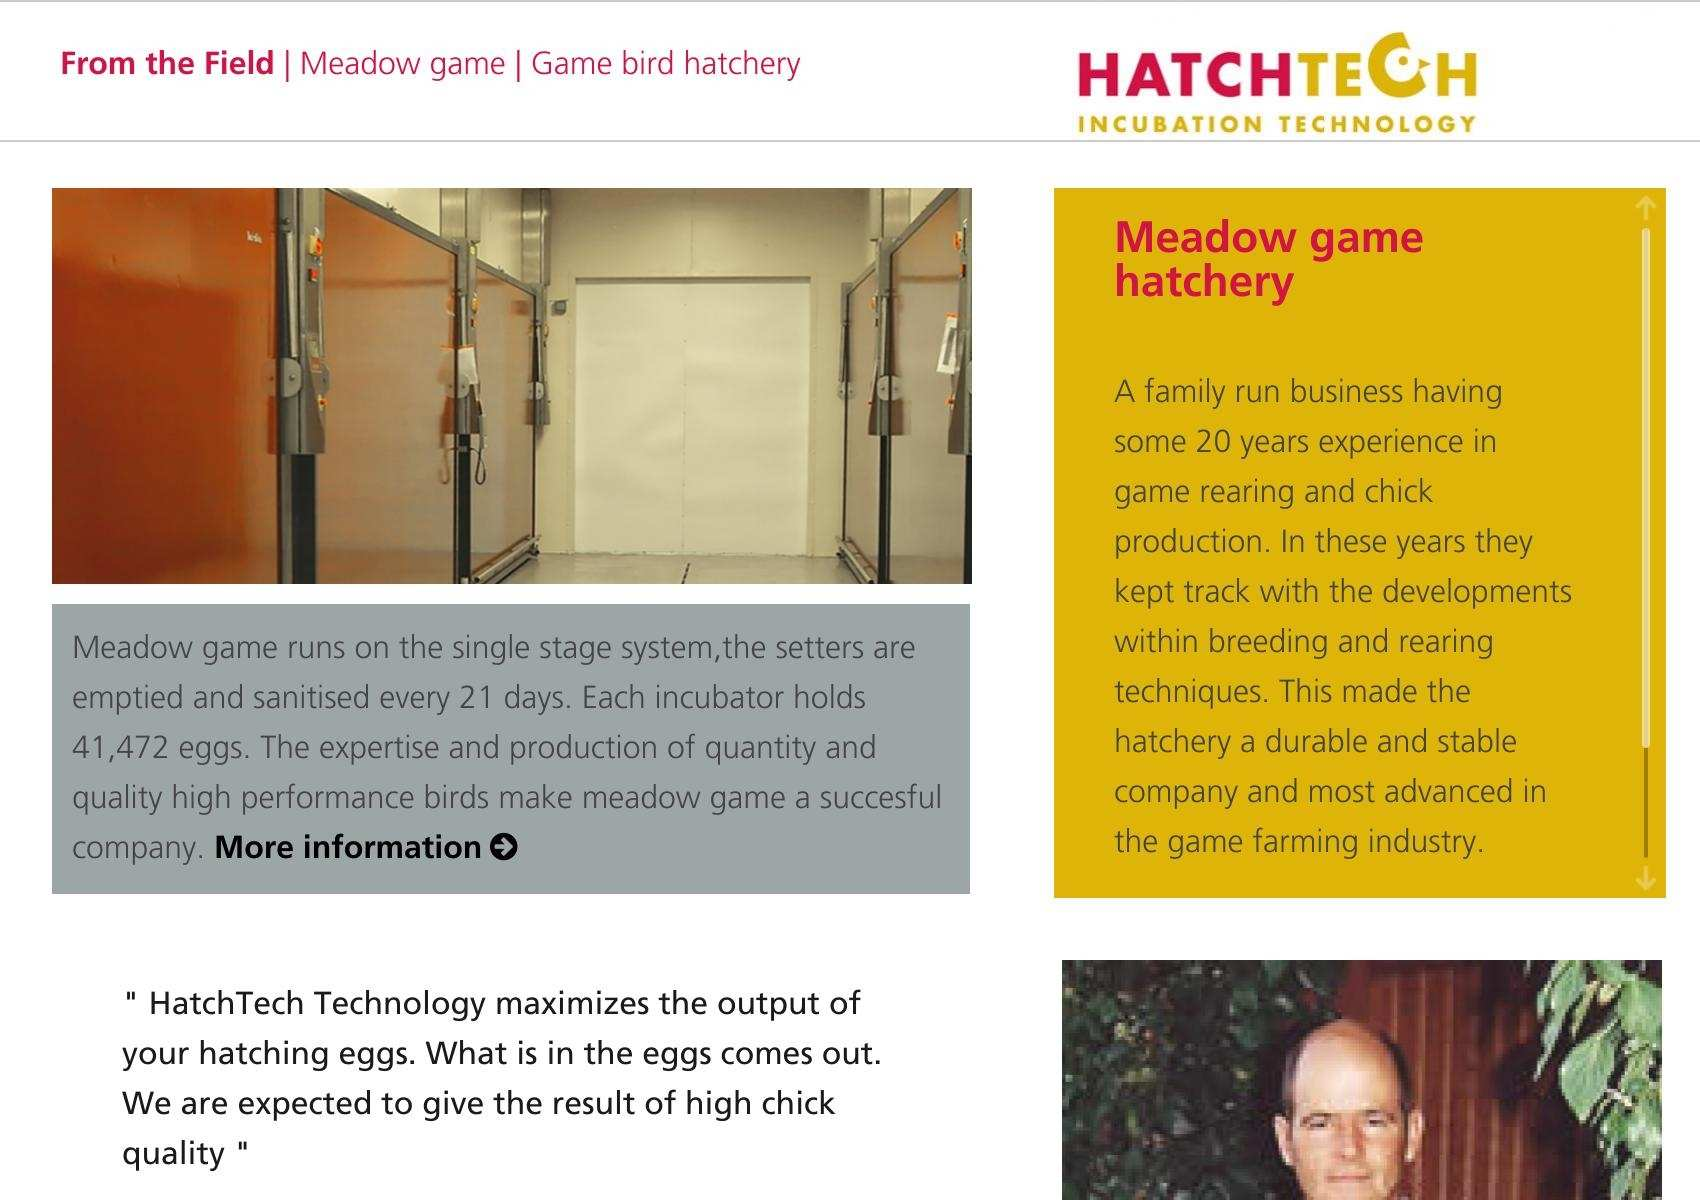 Hatchtech Magazine Special - From the Field (Meadow game)